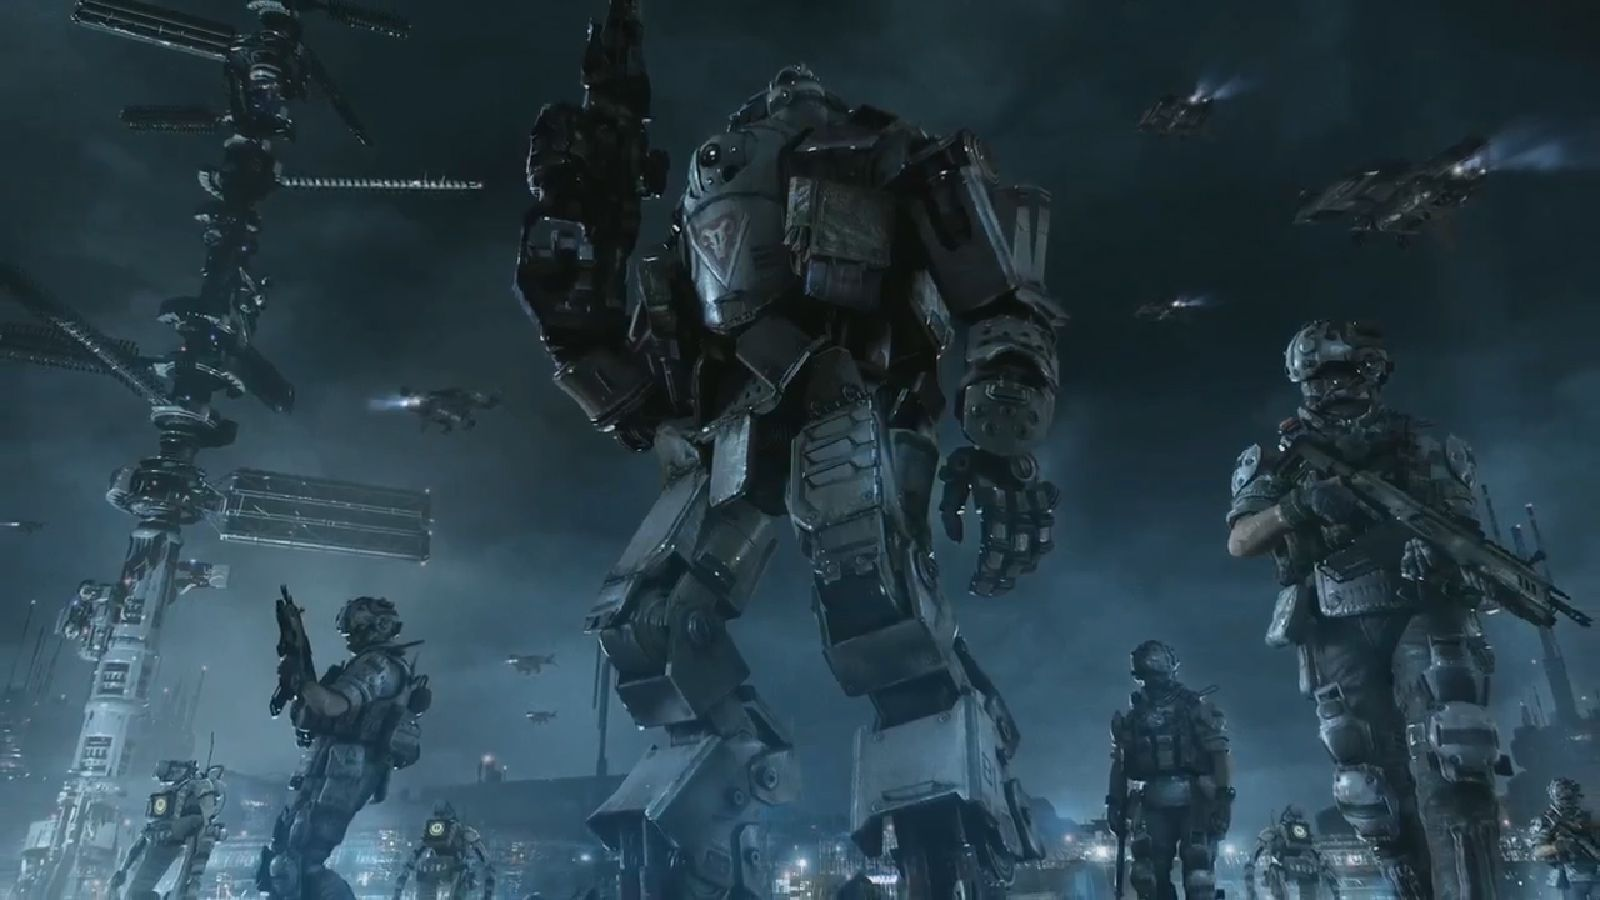 mech warfare art - Google Search | space marines, exosuits, future